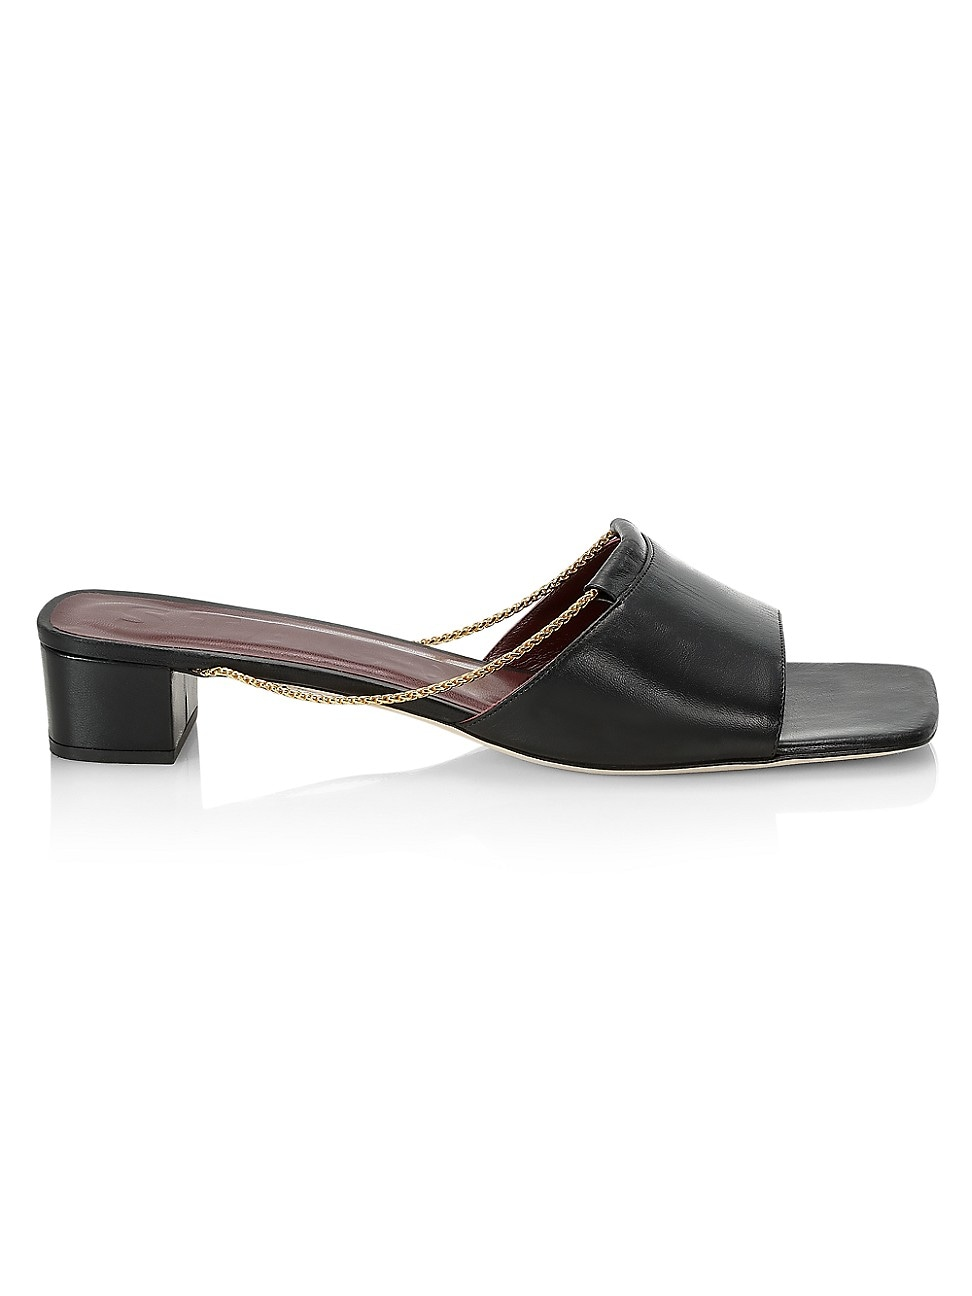 Staud WOMEN'S LEAH CHAIN-TRIMMED LEATHER MULES